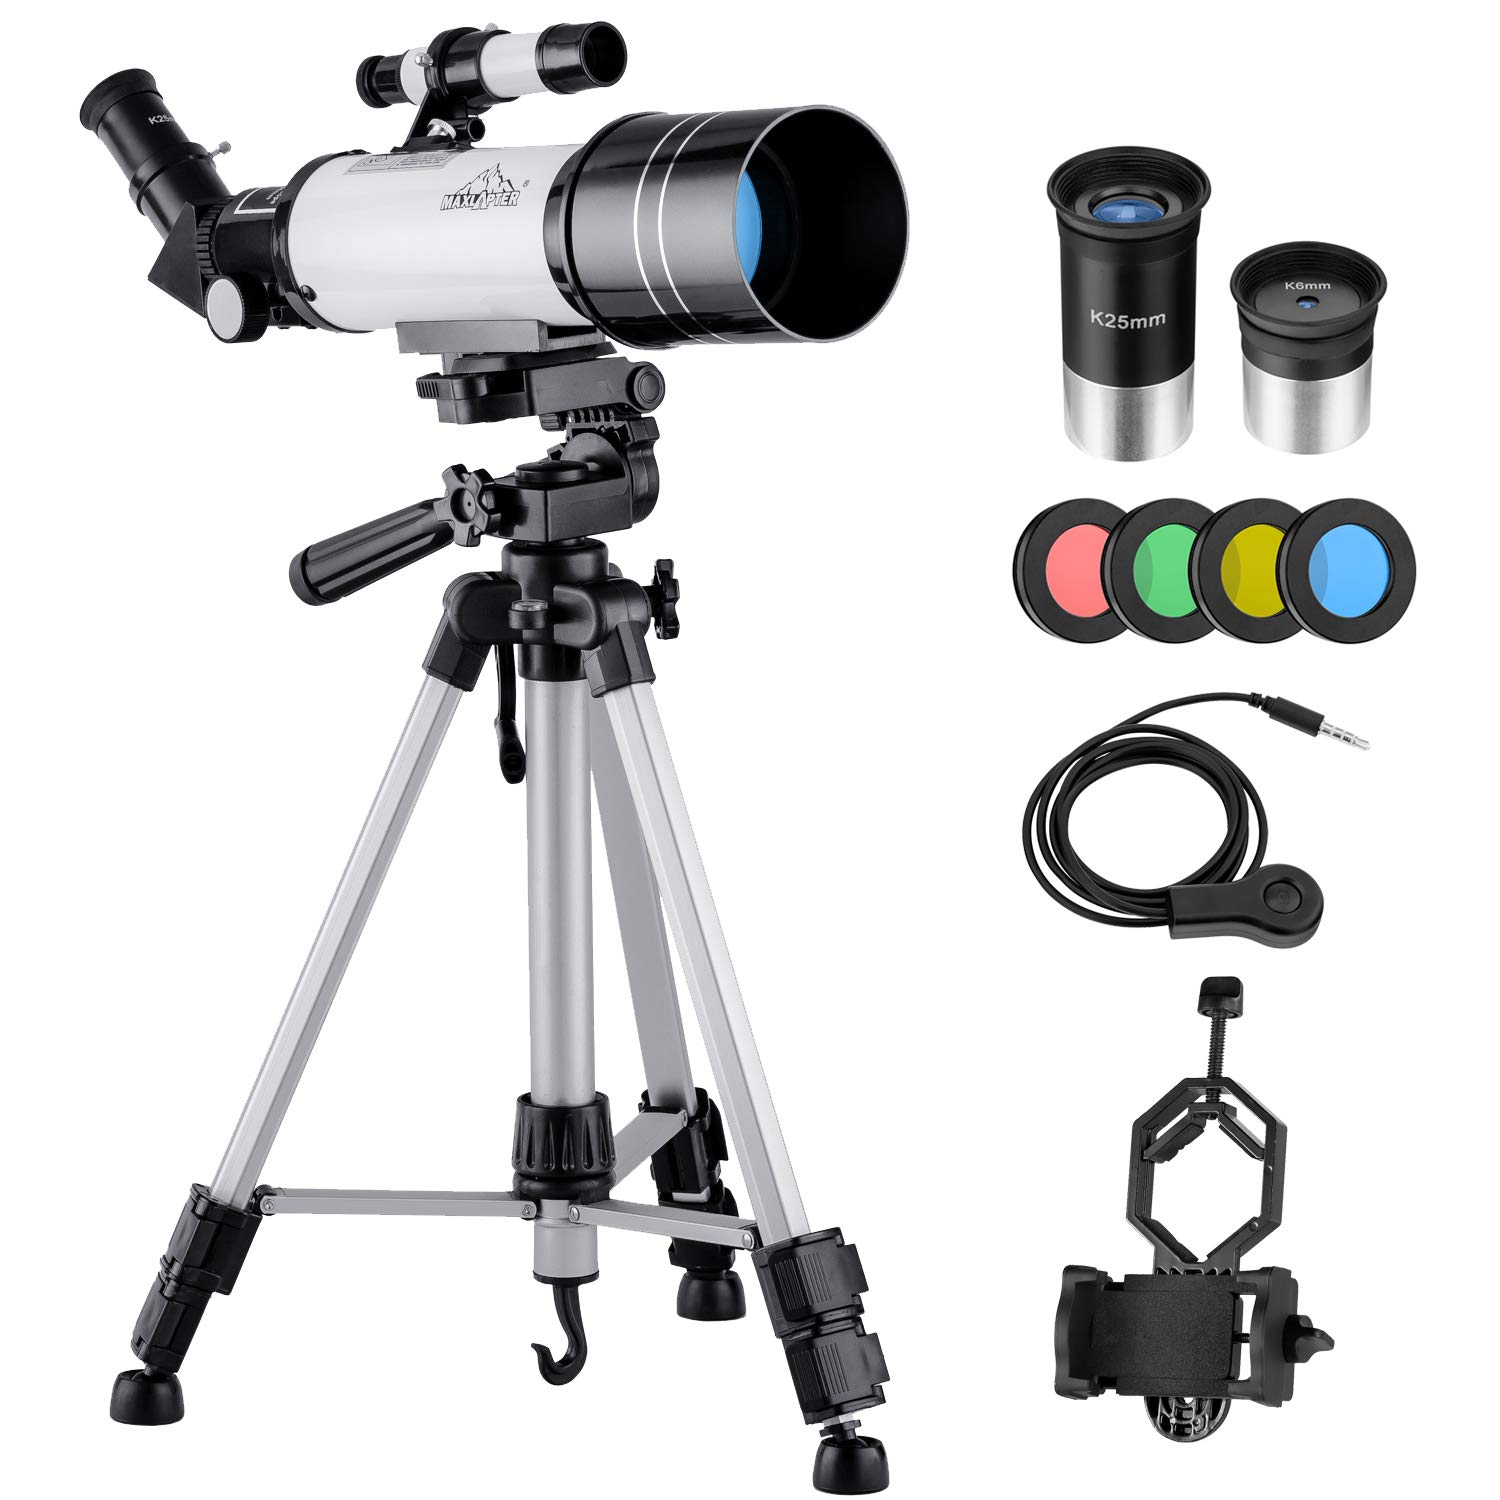 MAXLAPTER Telescope for Kids and Beginners, 70mm Travel Refractor Telescope for Astronomy with Adjustable Tripod, Smartphone Adapter, Camera Shutter Wire Control, Backpack